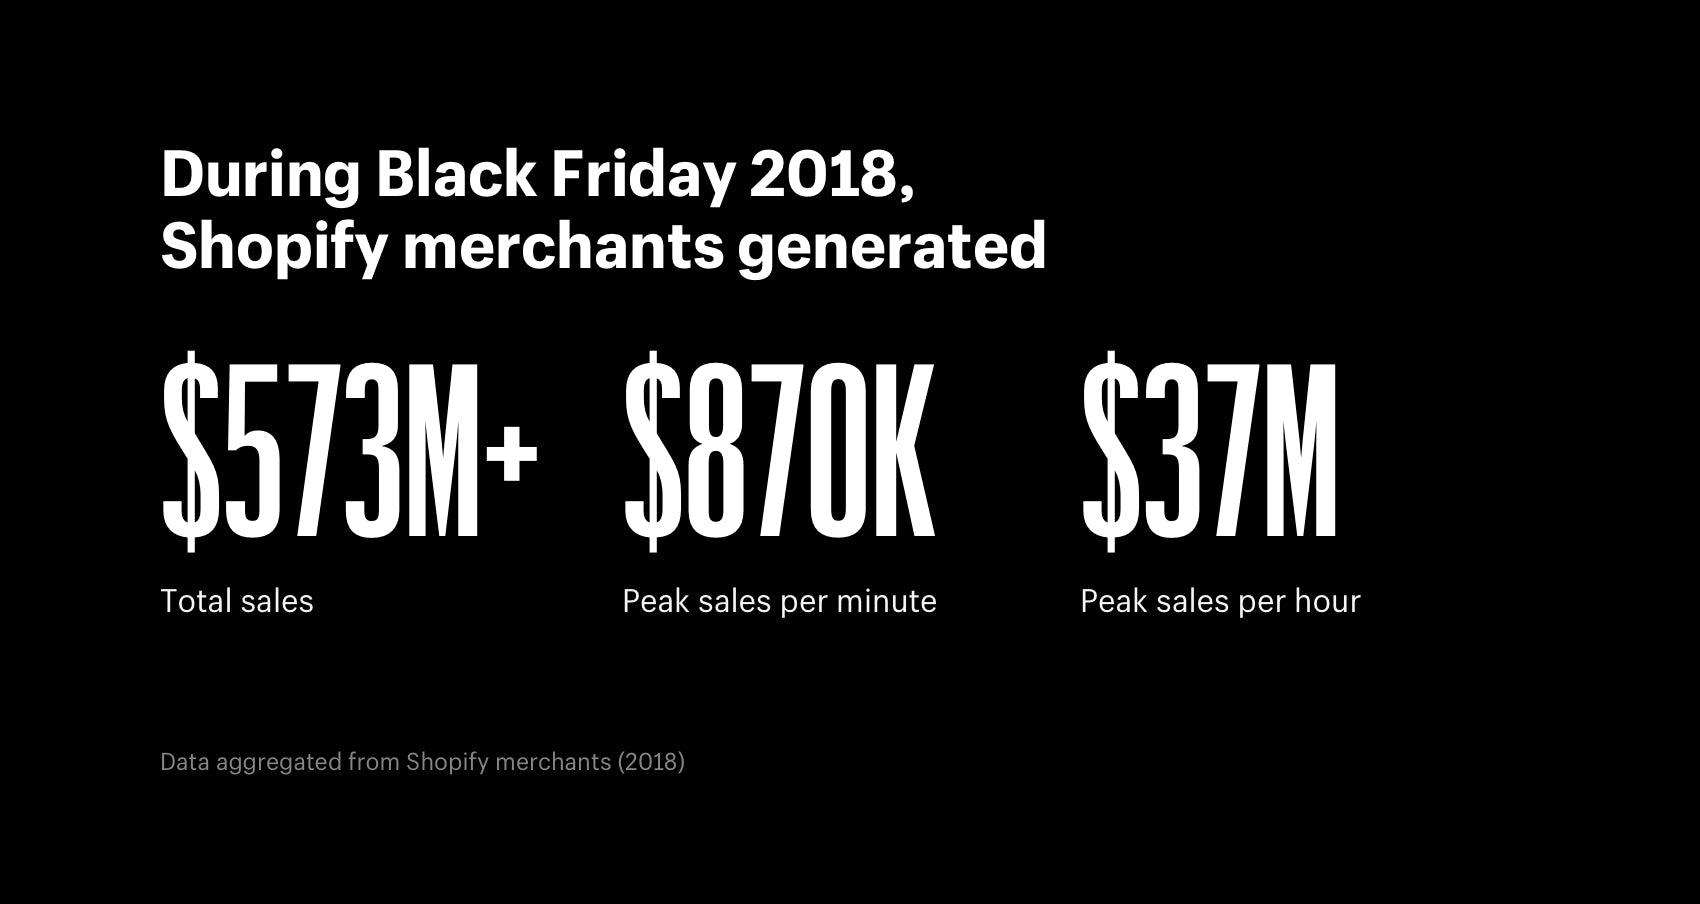 During Black Friday 2018, Shopify merchants generated